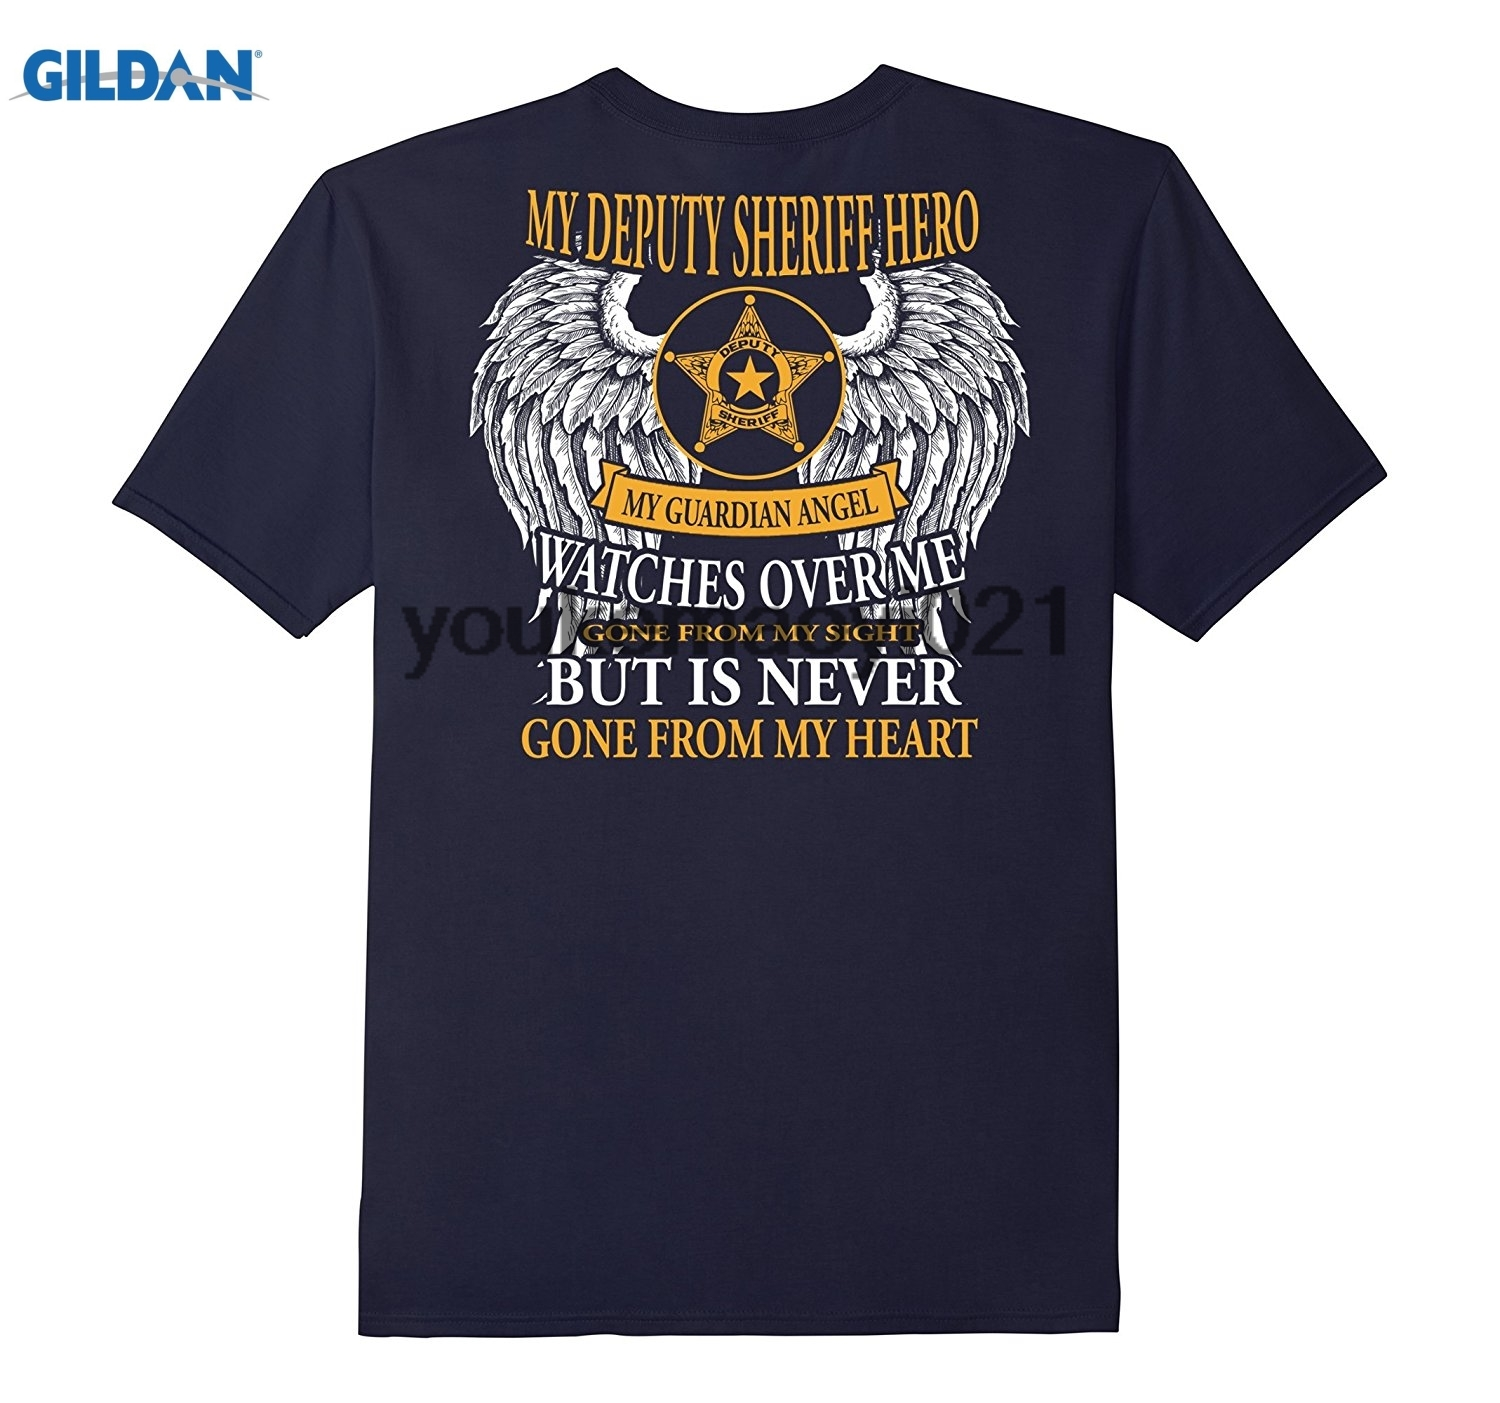 GILDAN Guardian Angel My Deputy Sheriff Guardian Angel